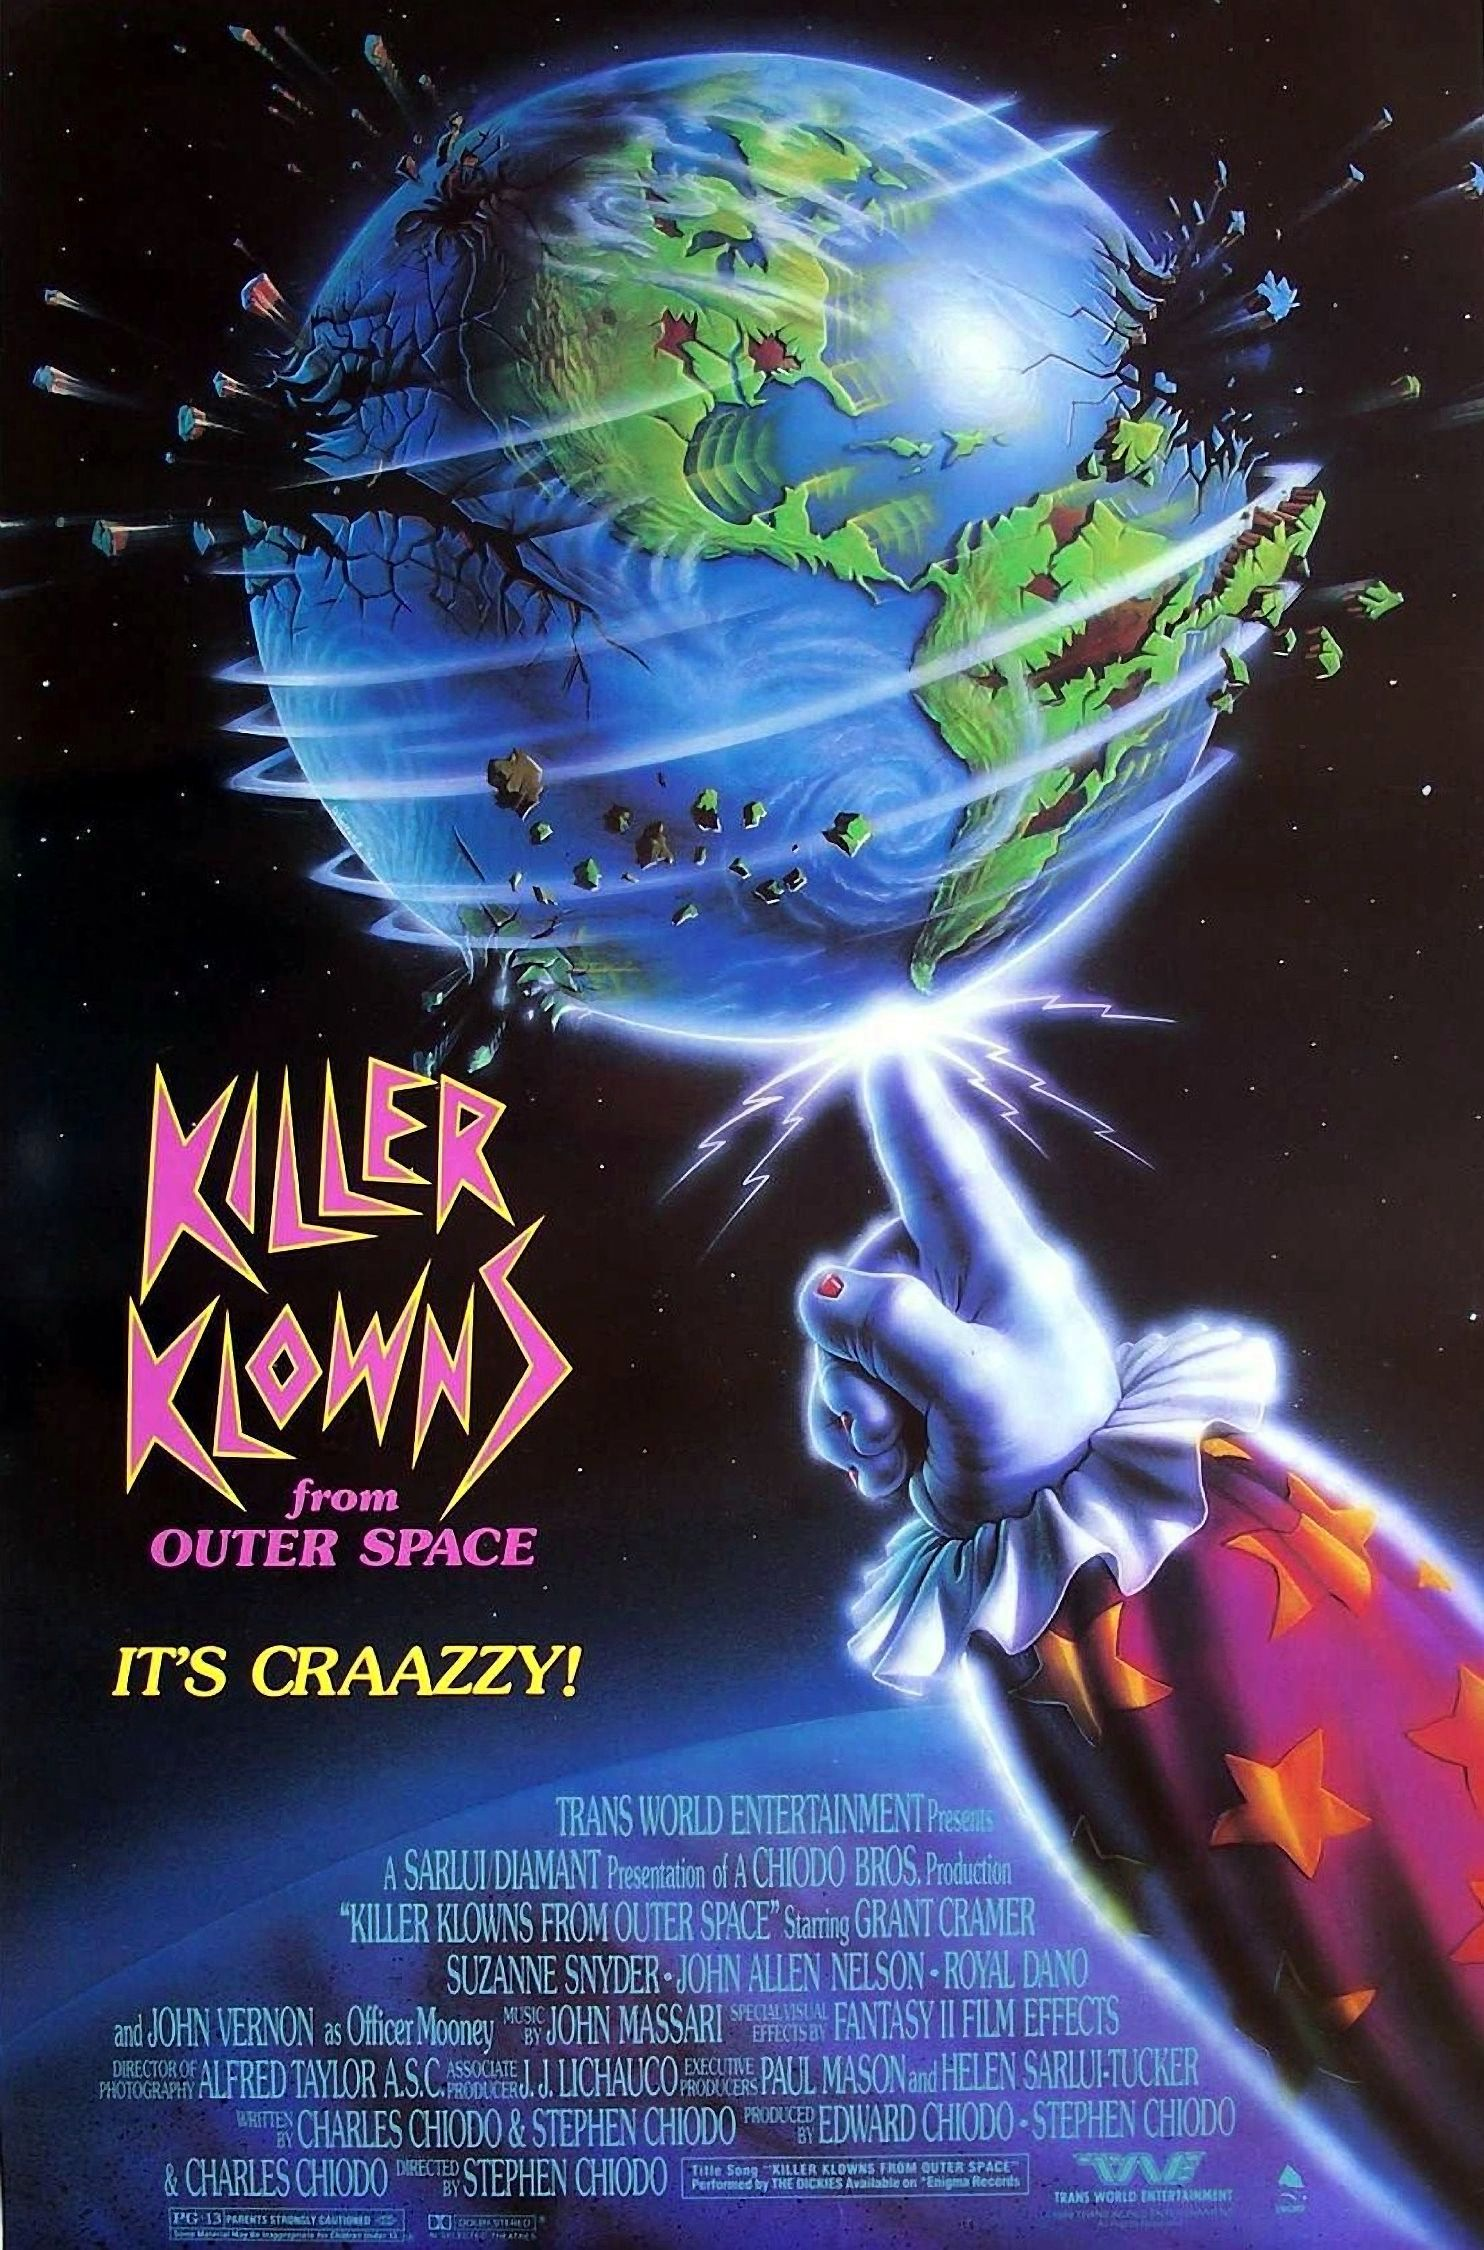 Killer klowns from outer space (1988) imdb.